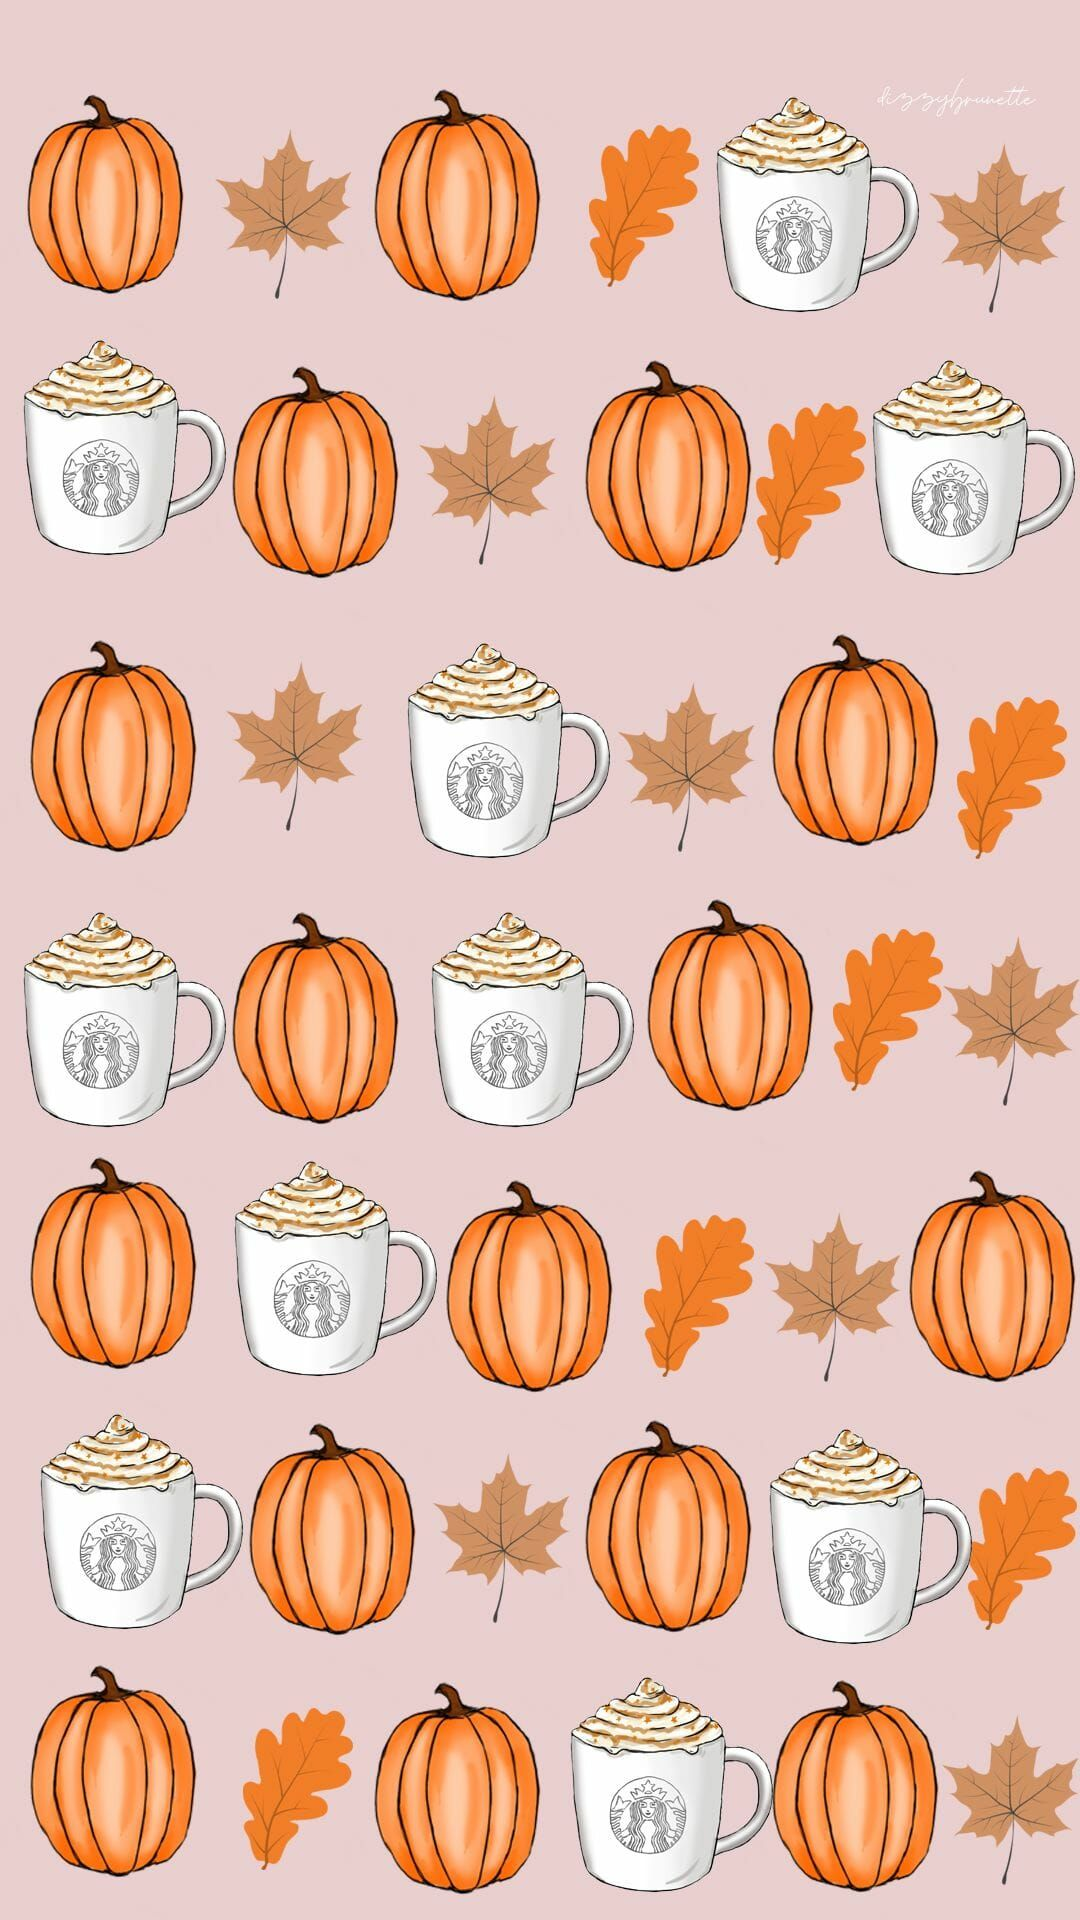 31 Free Amazing Fall iPhone Wallpaper Backgrounds For Fall